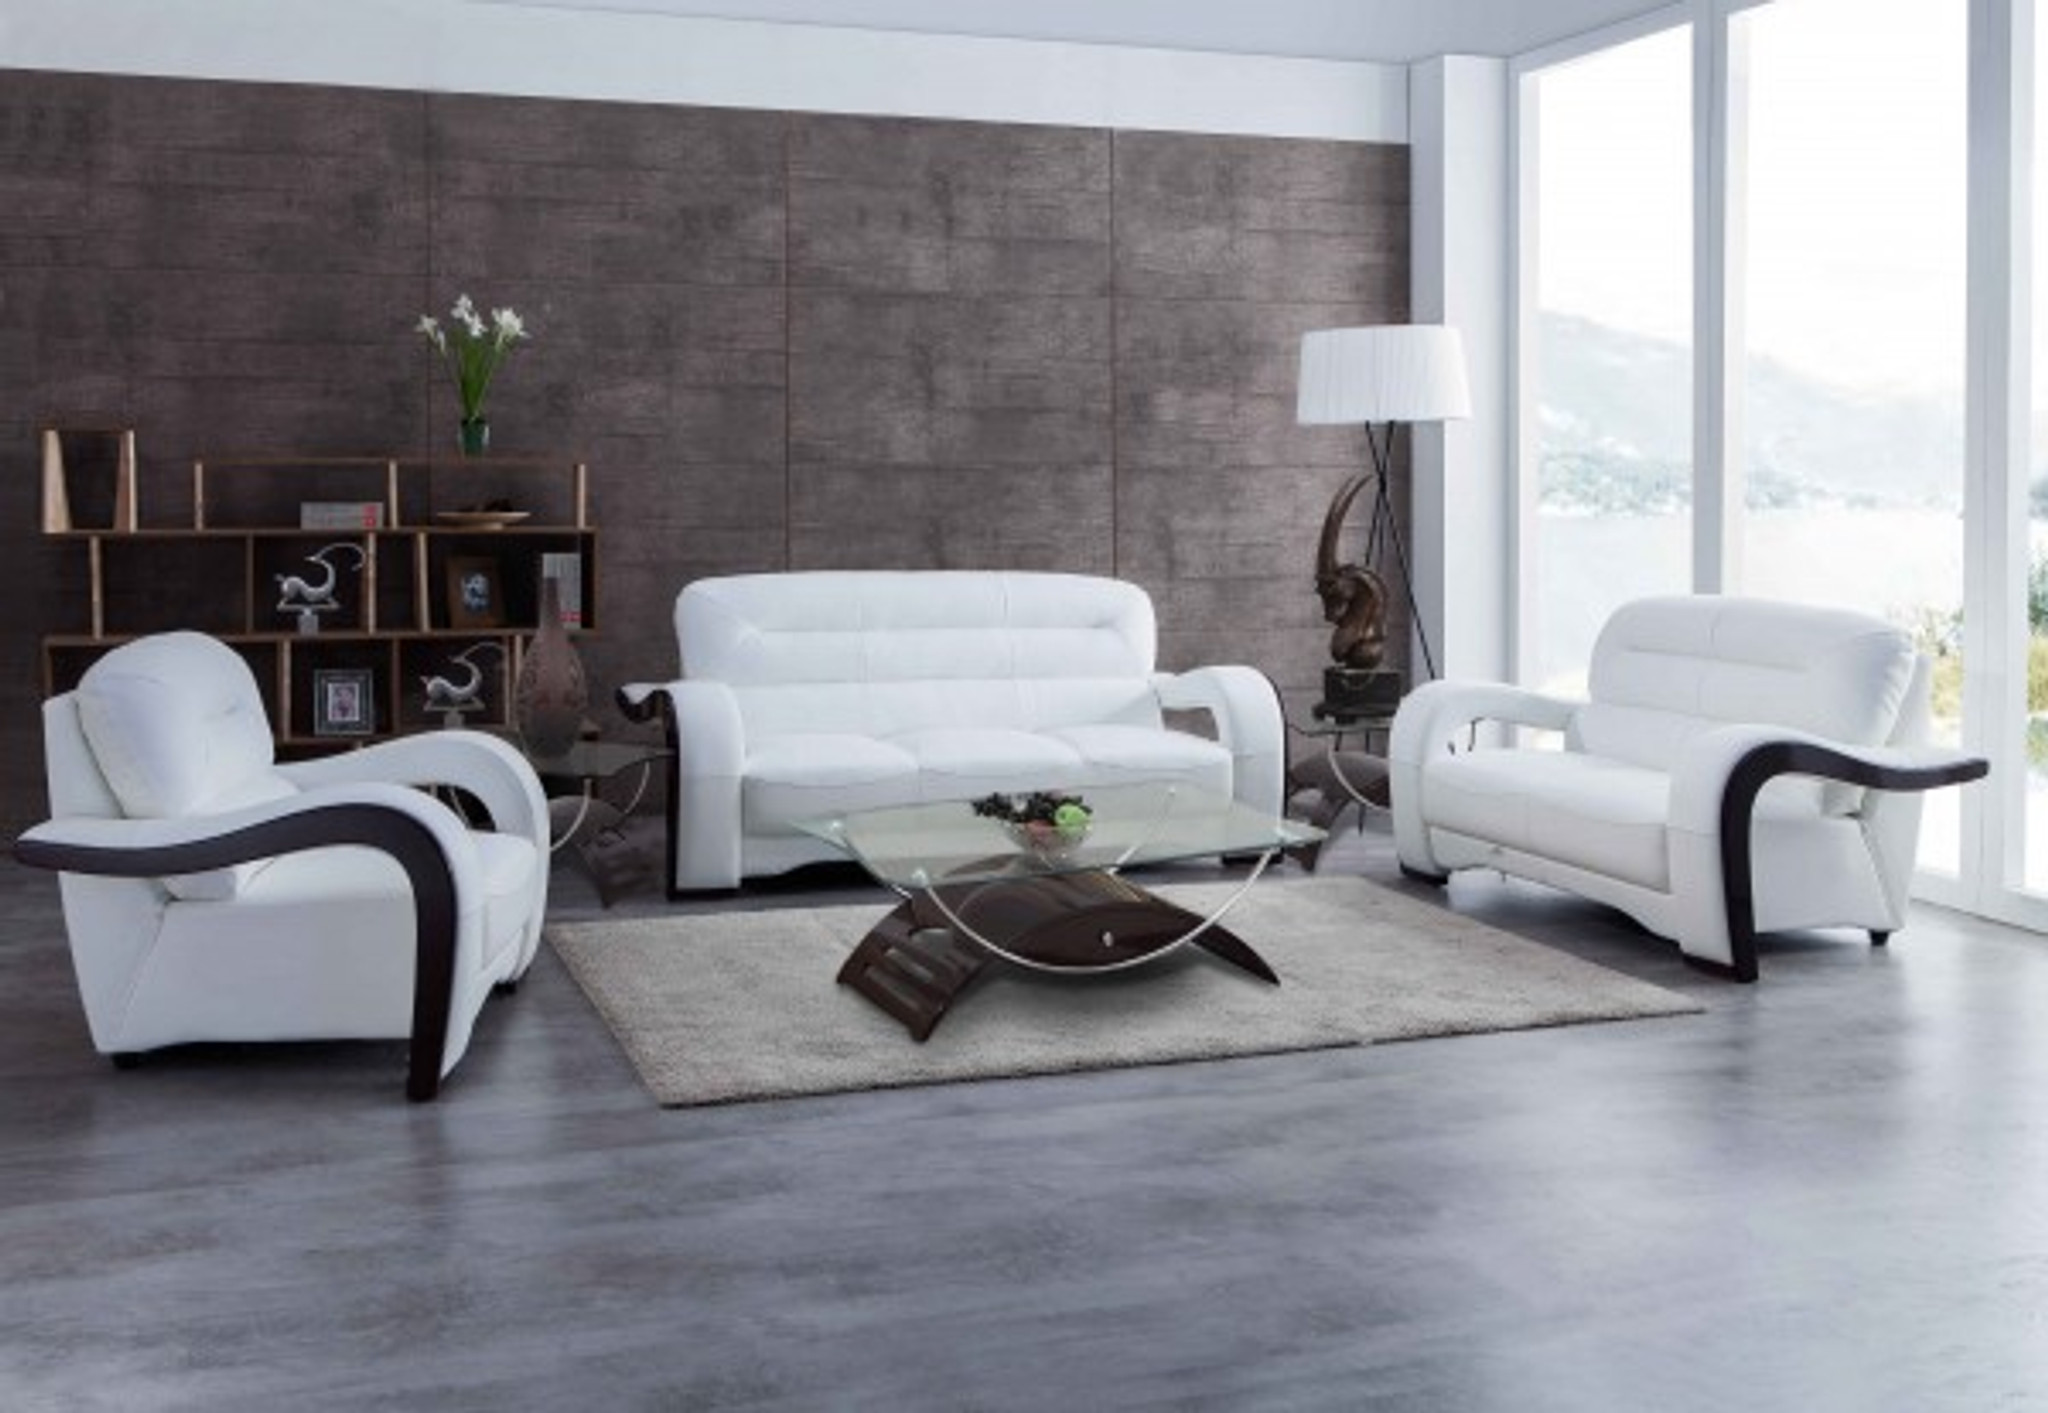 Picture of: Kassa Mall Home Furniture U992 White Sofa Loveseat Set In White Leather